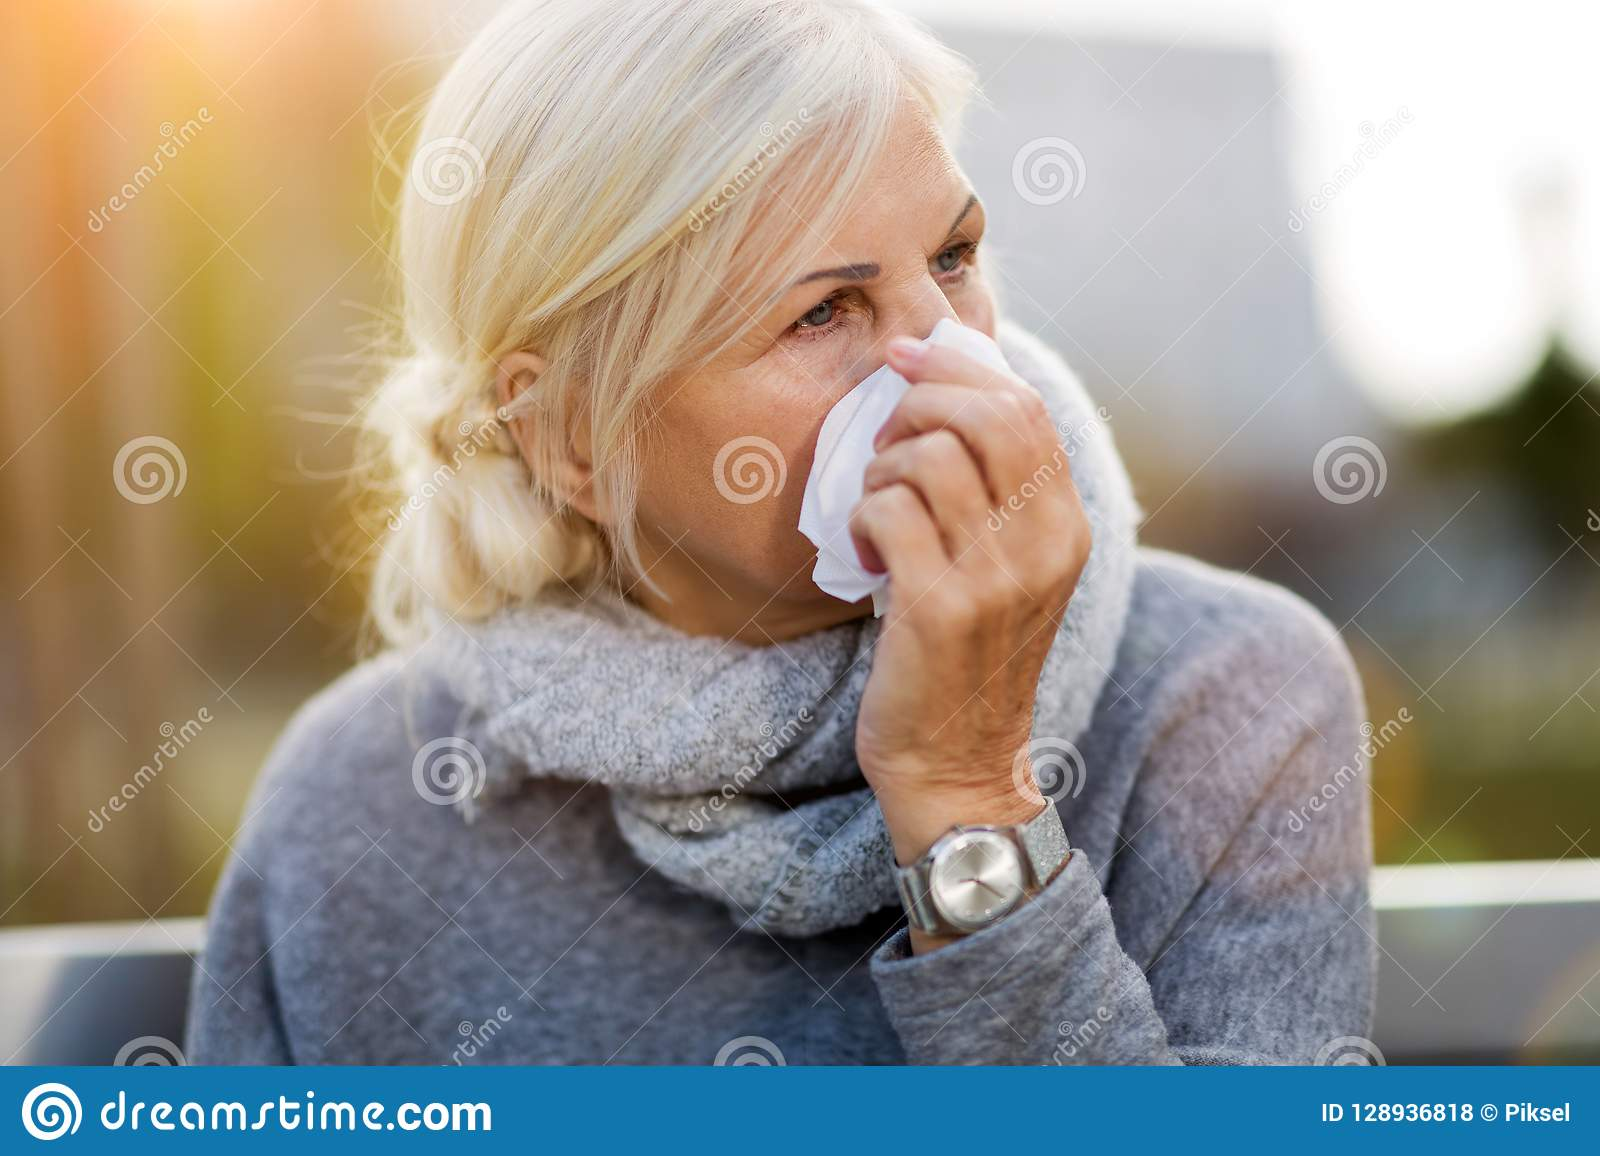 Weeping old woman wipes her eyes with tissue